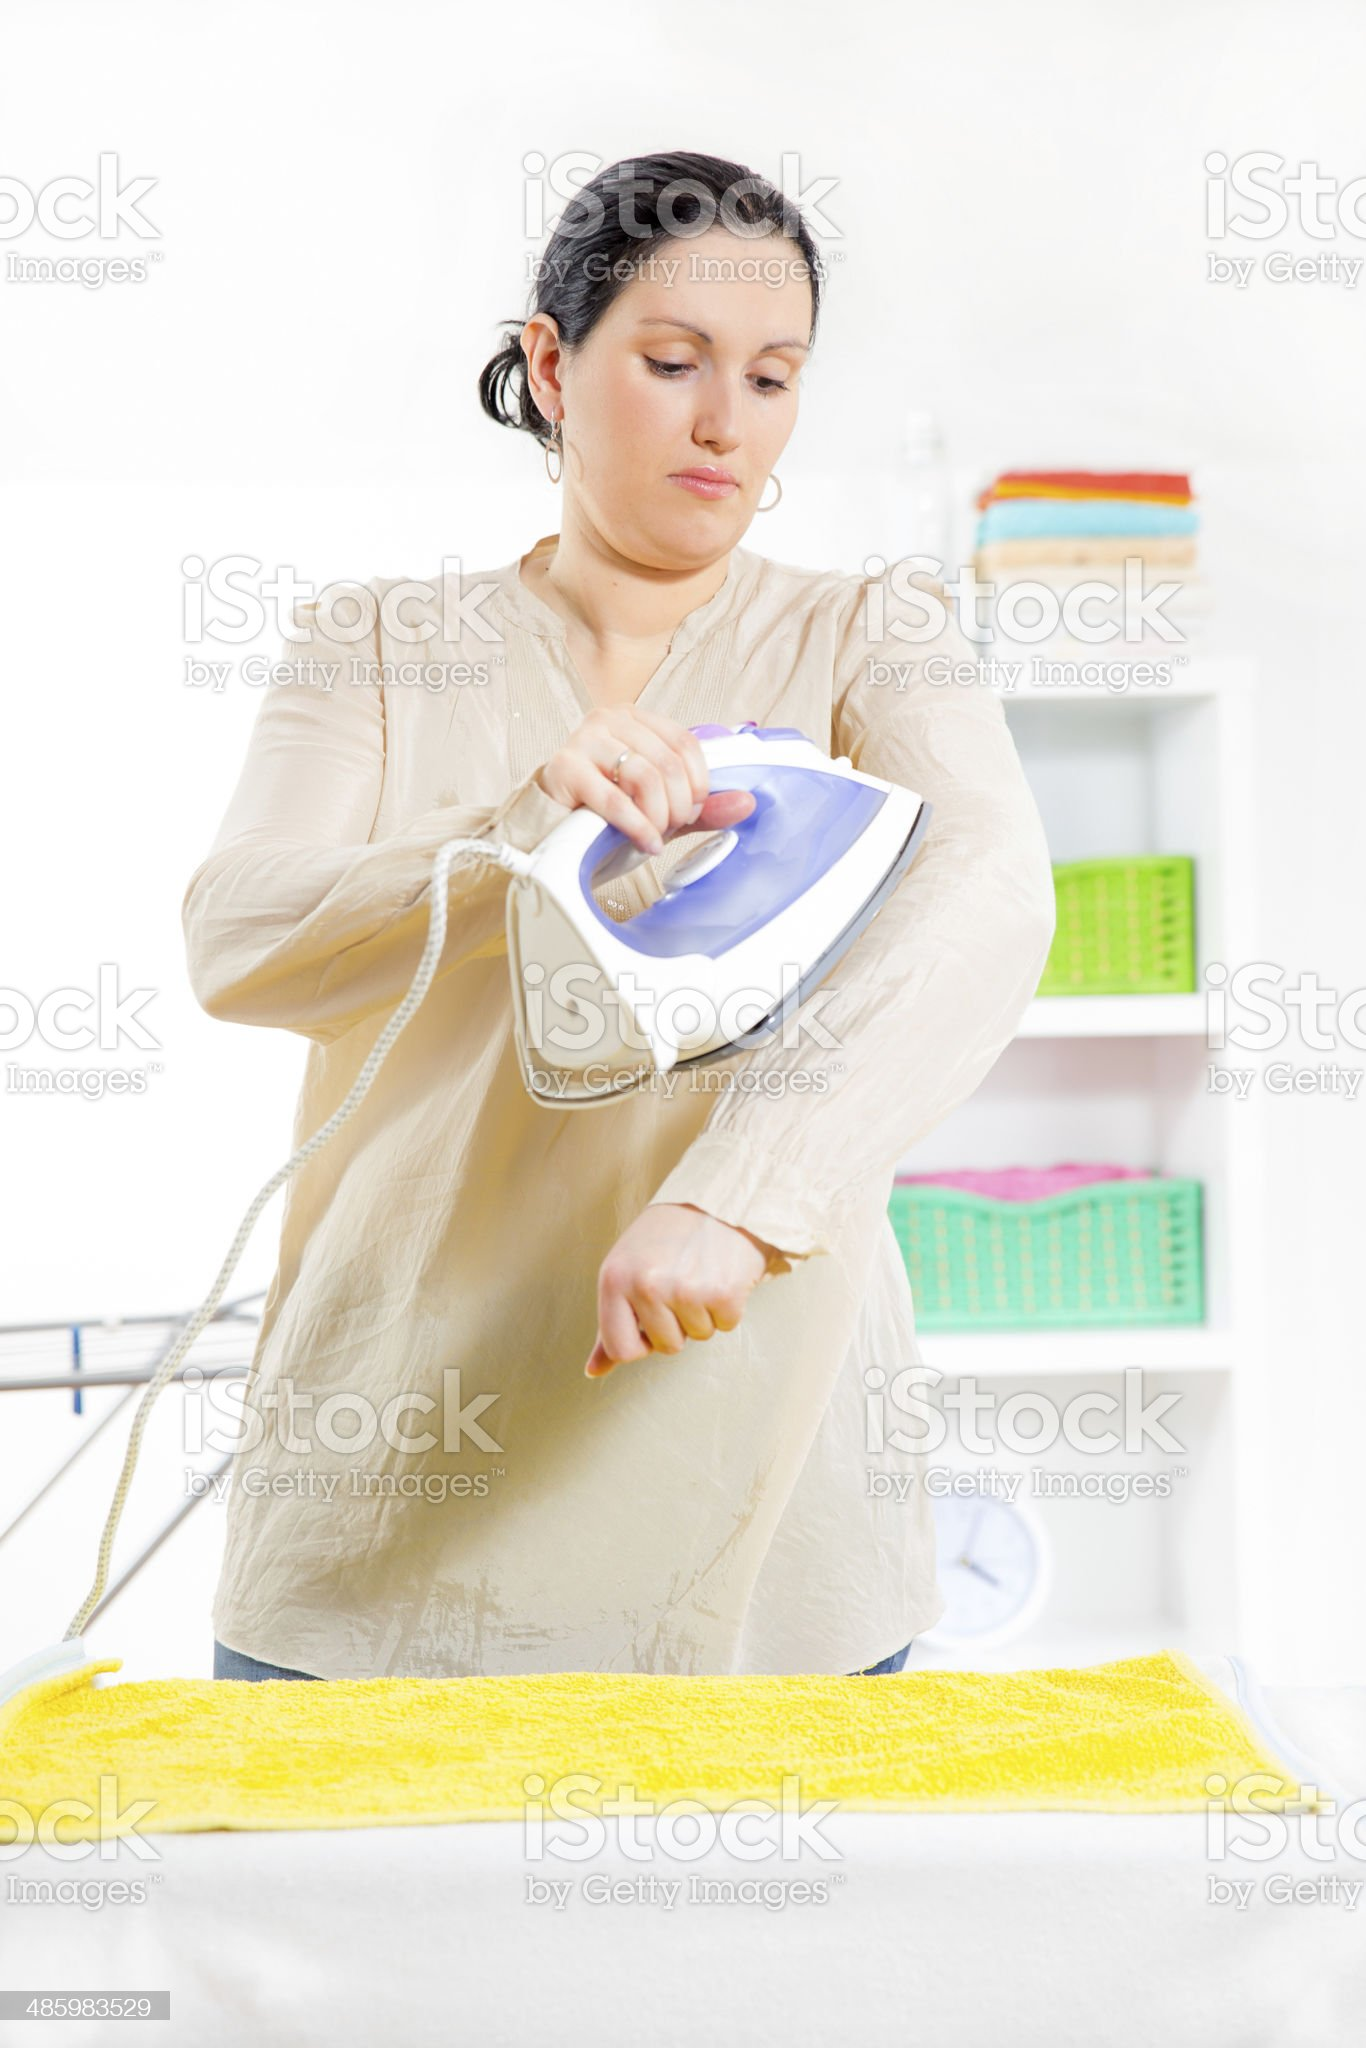 Woman with iron royalty-free stock photo